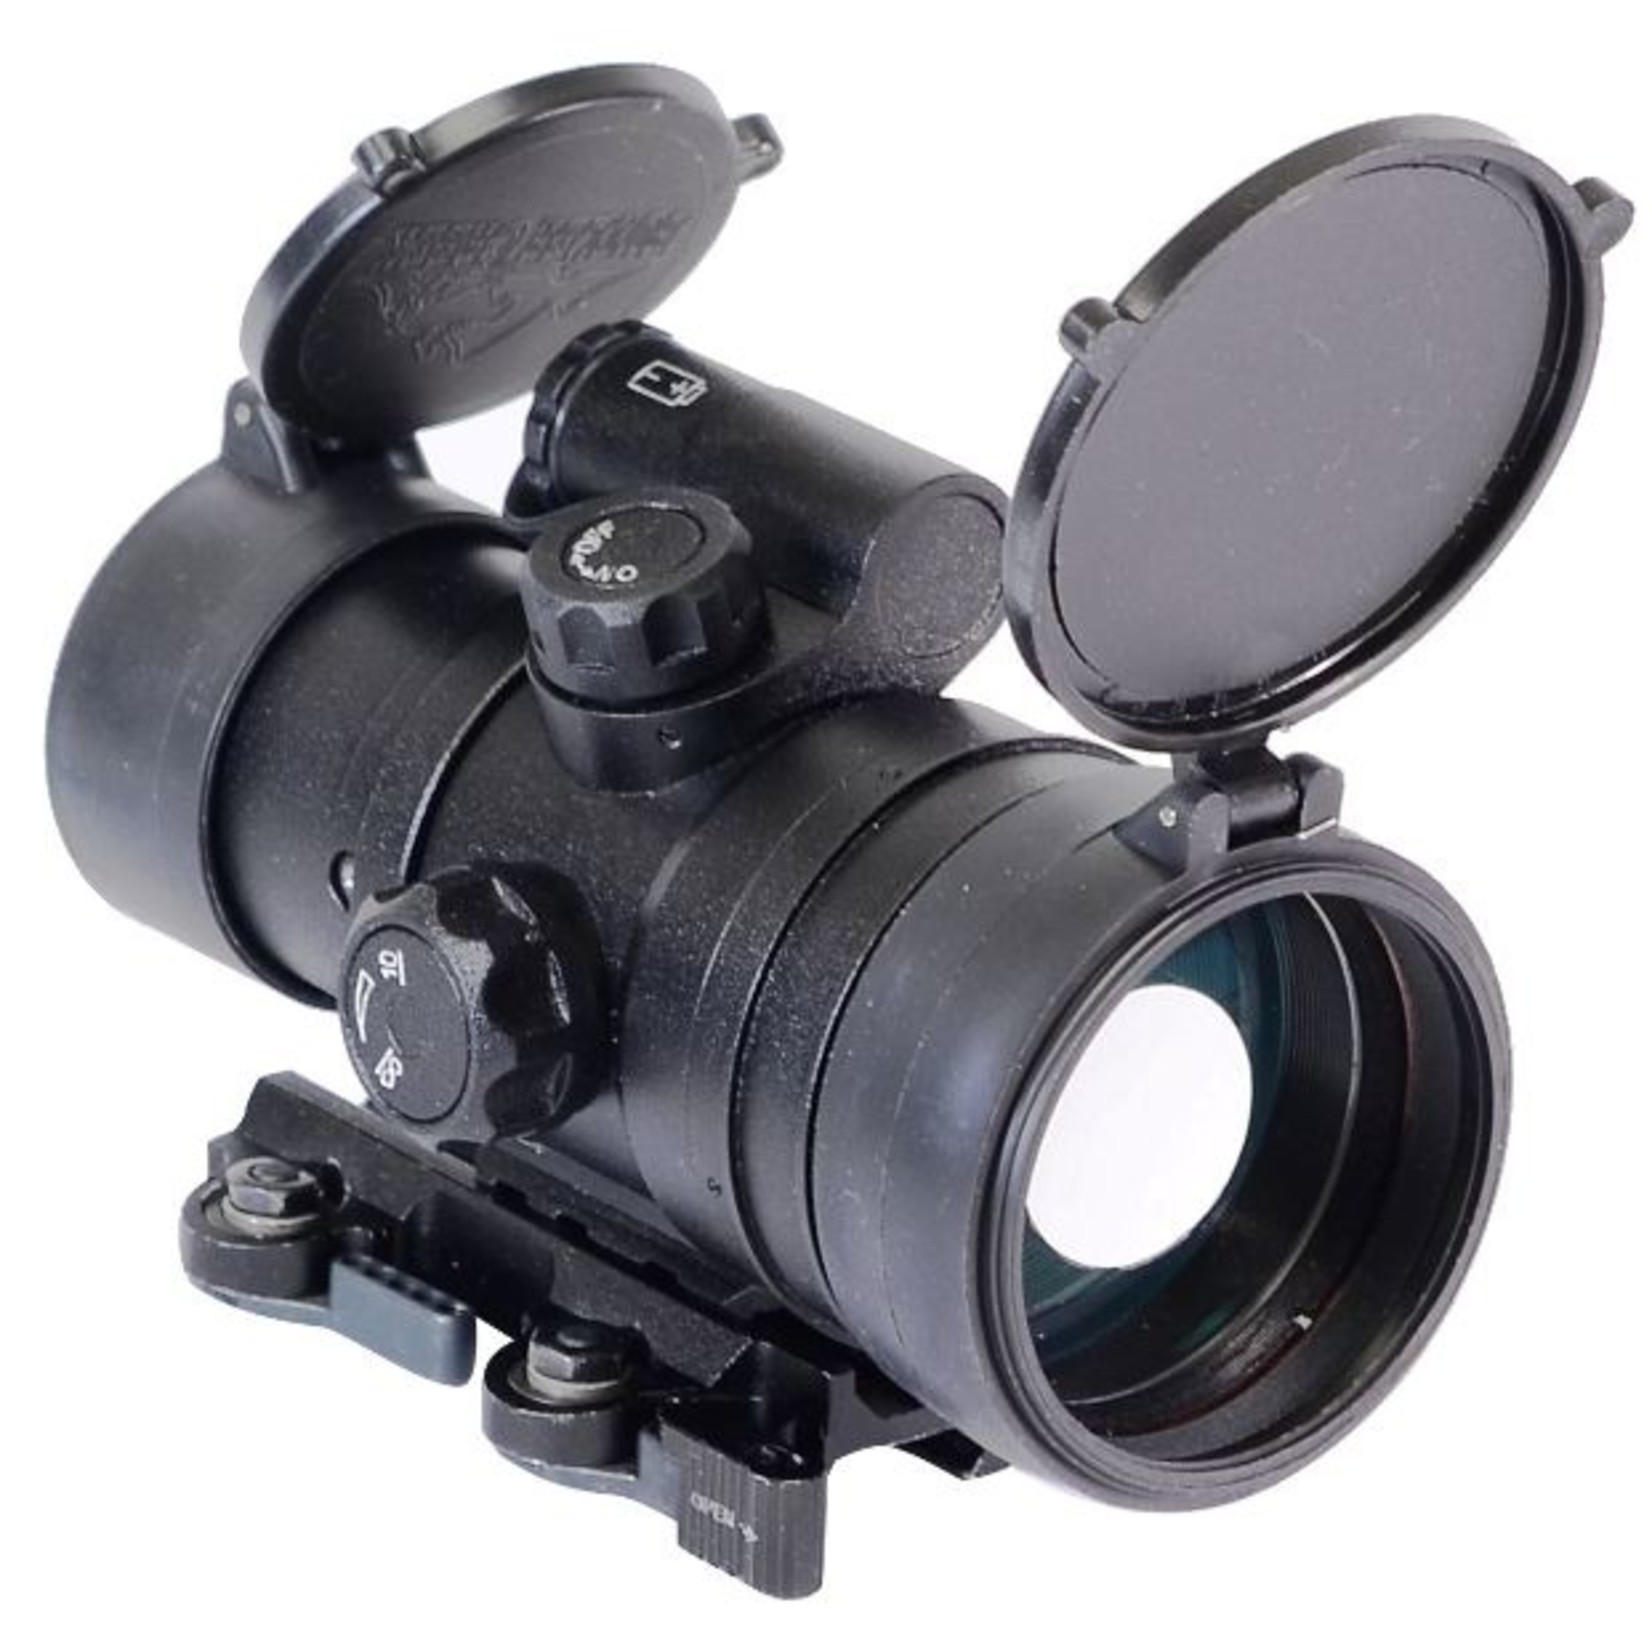 GSCI CNVD-22 CLIP-ON NIGHT VISION